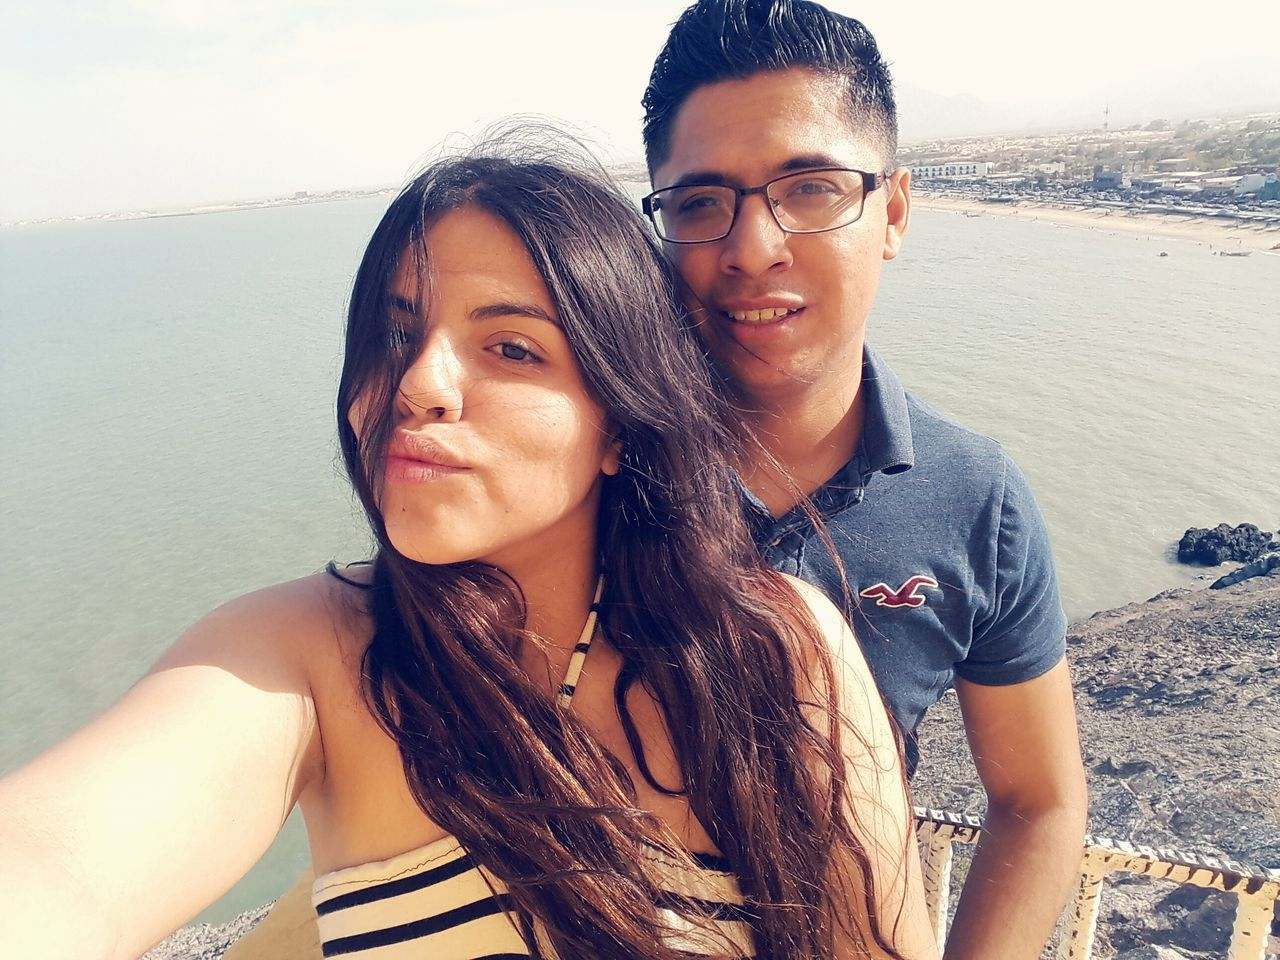 two people, young adult, looking at camera, young women, portrait, real people, smiling, togetherness, leisure activity, front view, happiness, outdoors, lifestyles, beach, young men, love, beautiful woman, nature, day, beauty in nature, sea, vacations, eyeglasses, bonding, water